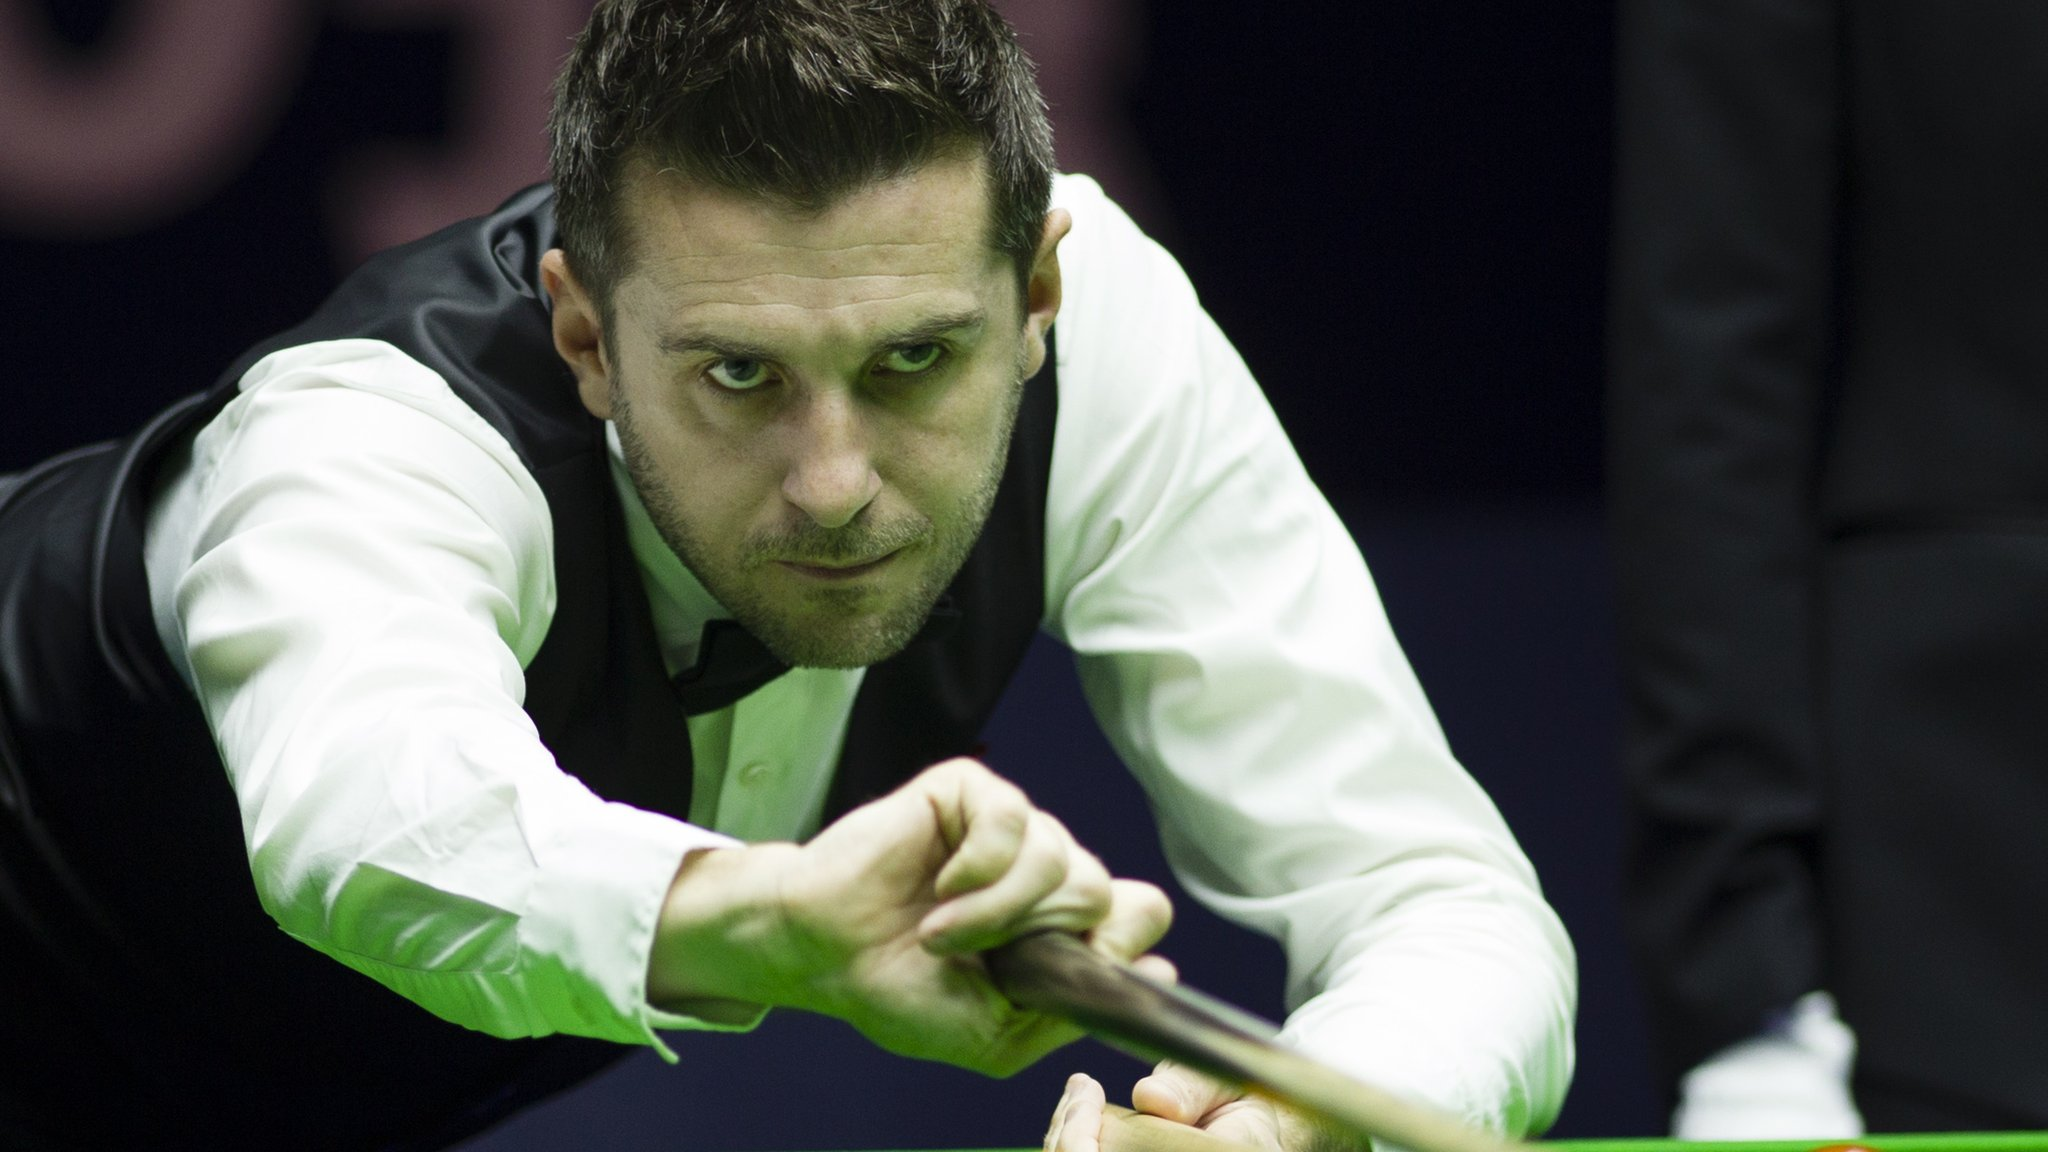 Northern Ireland Open: Selby eases into second round in Belfast